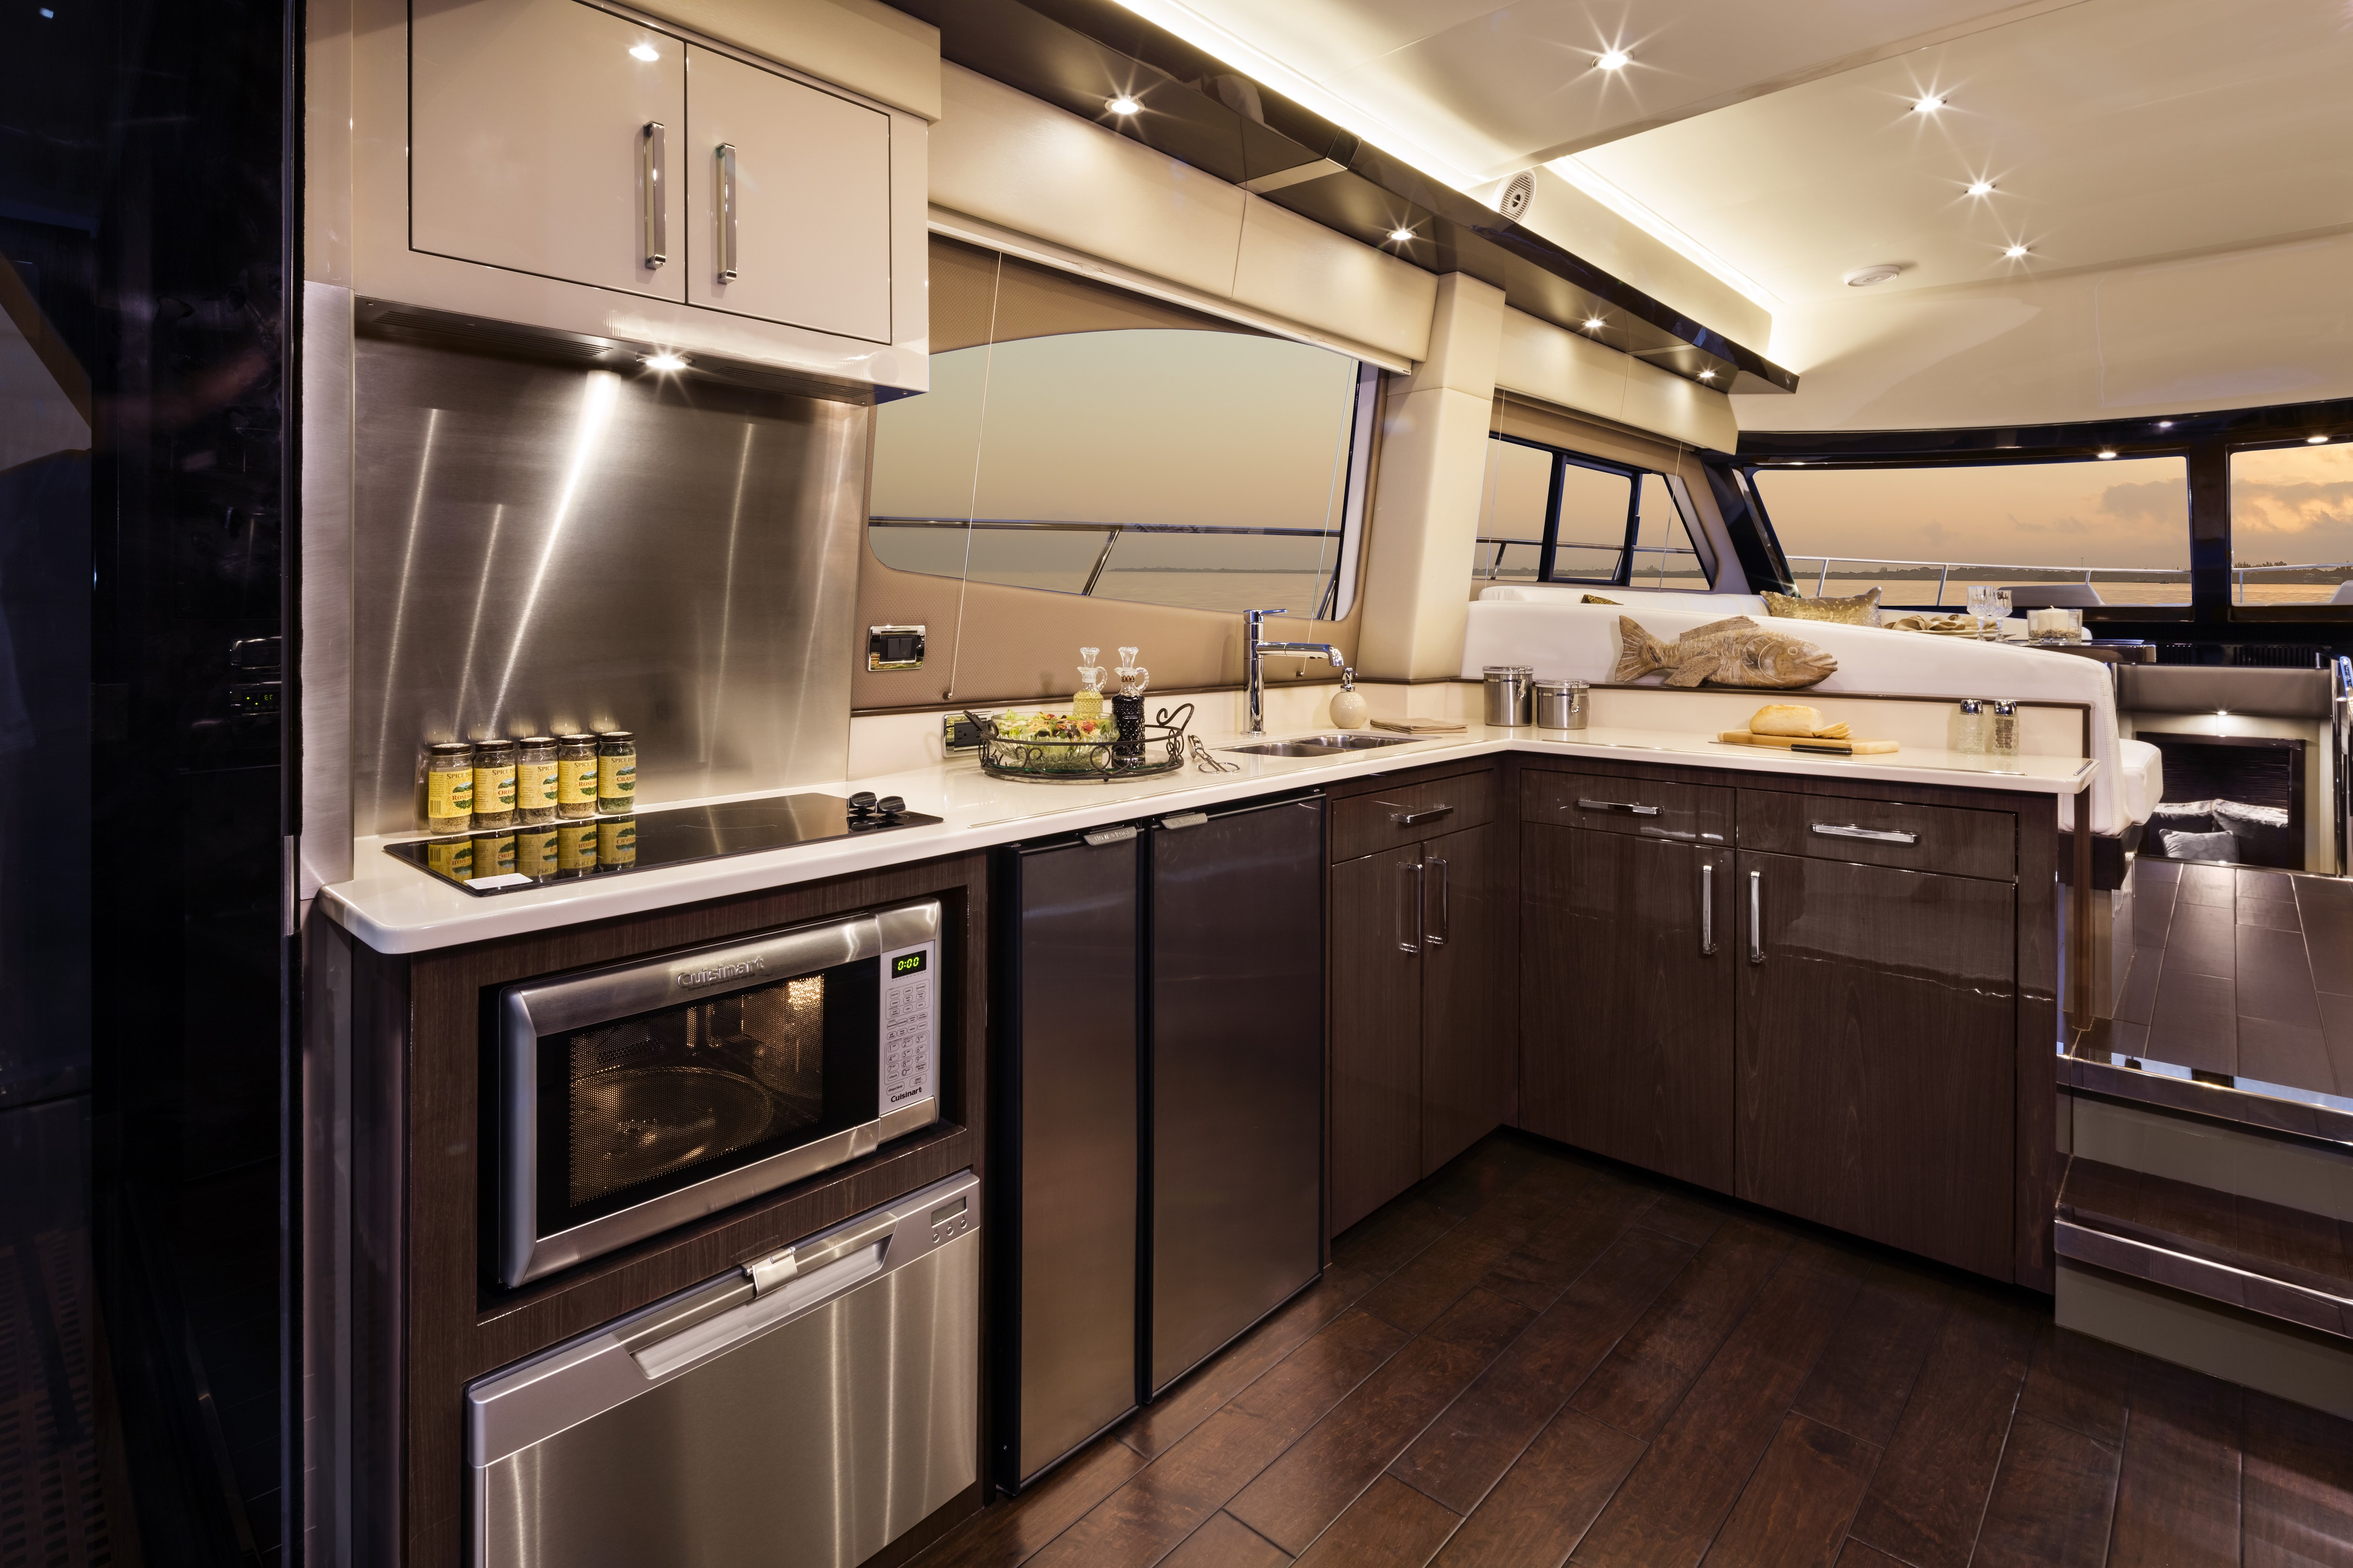 Image 1264: 2016-C50-galley-c